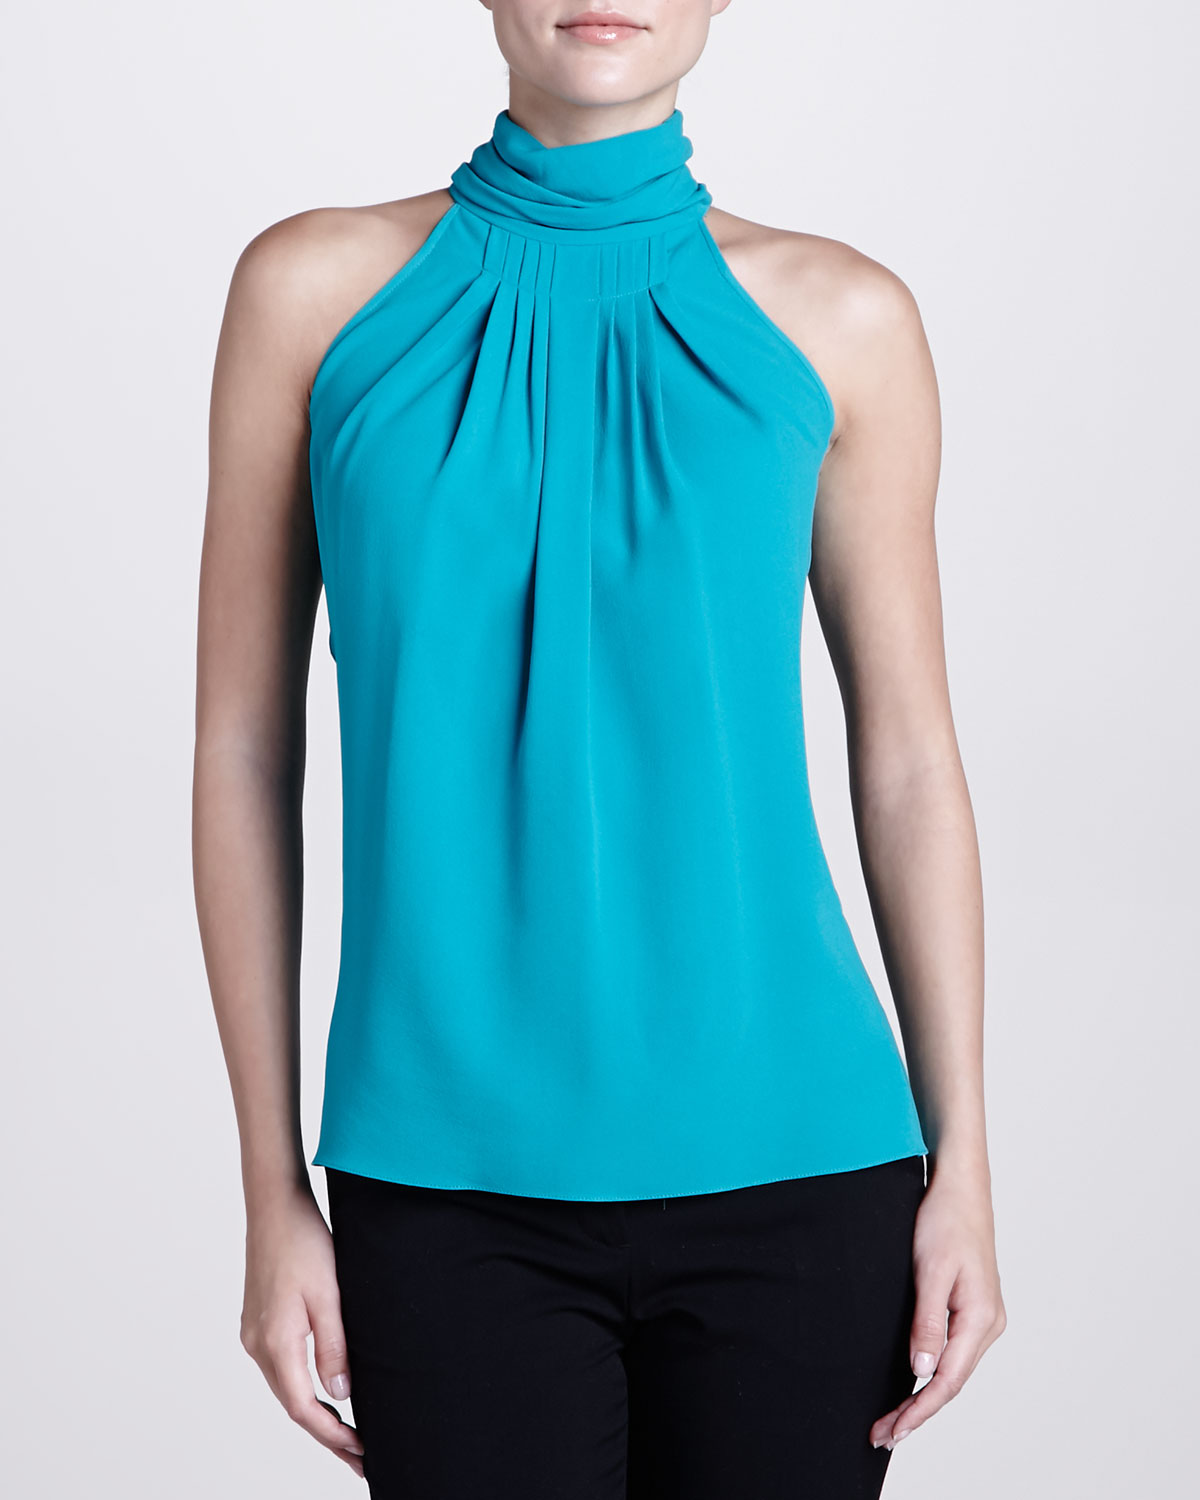 Turtle Neck Satin Blouse 34